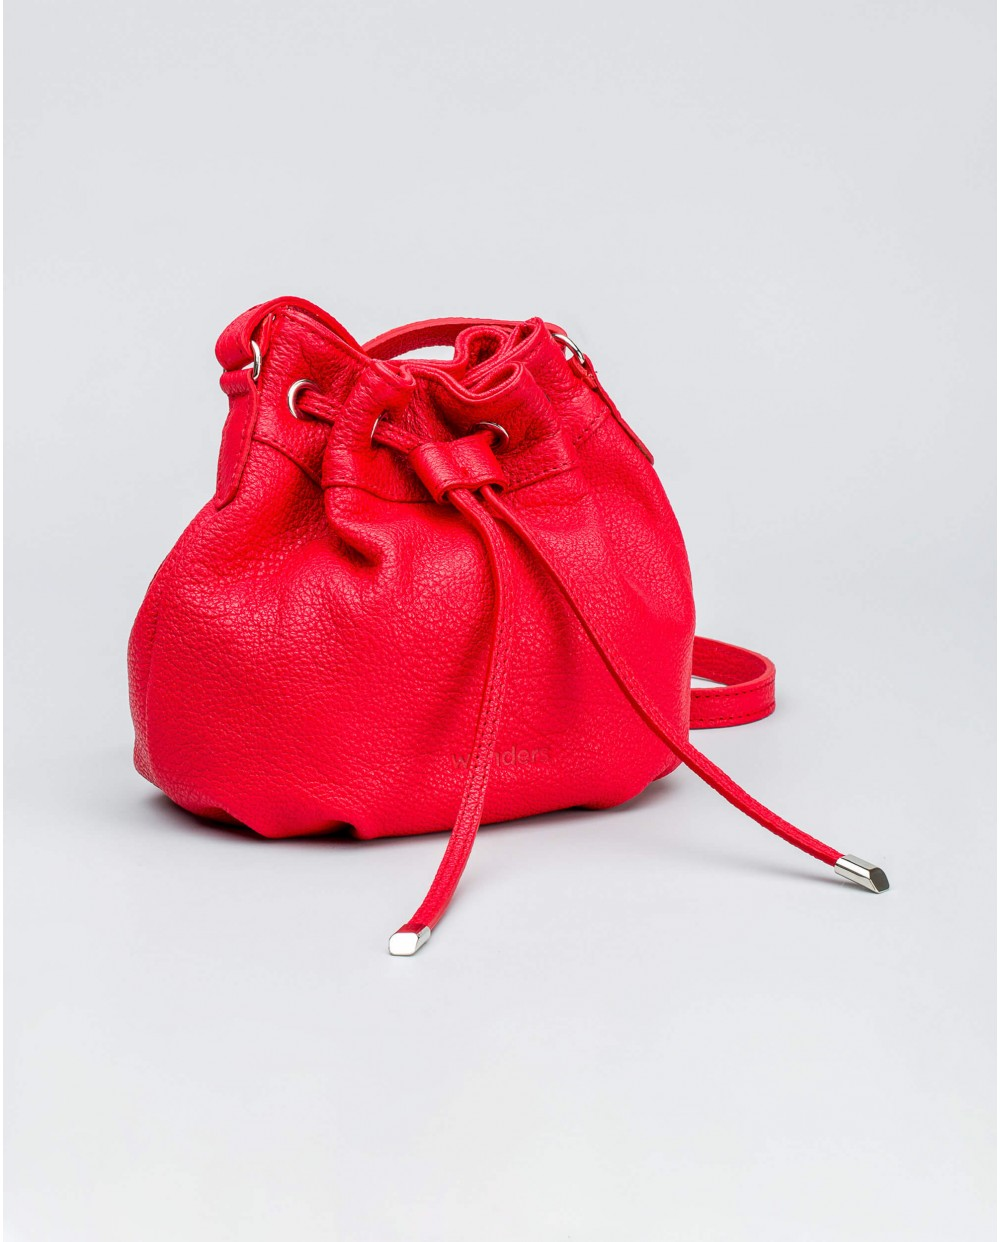 Wonders-Bags-Sack style leather handbag